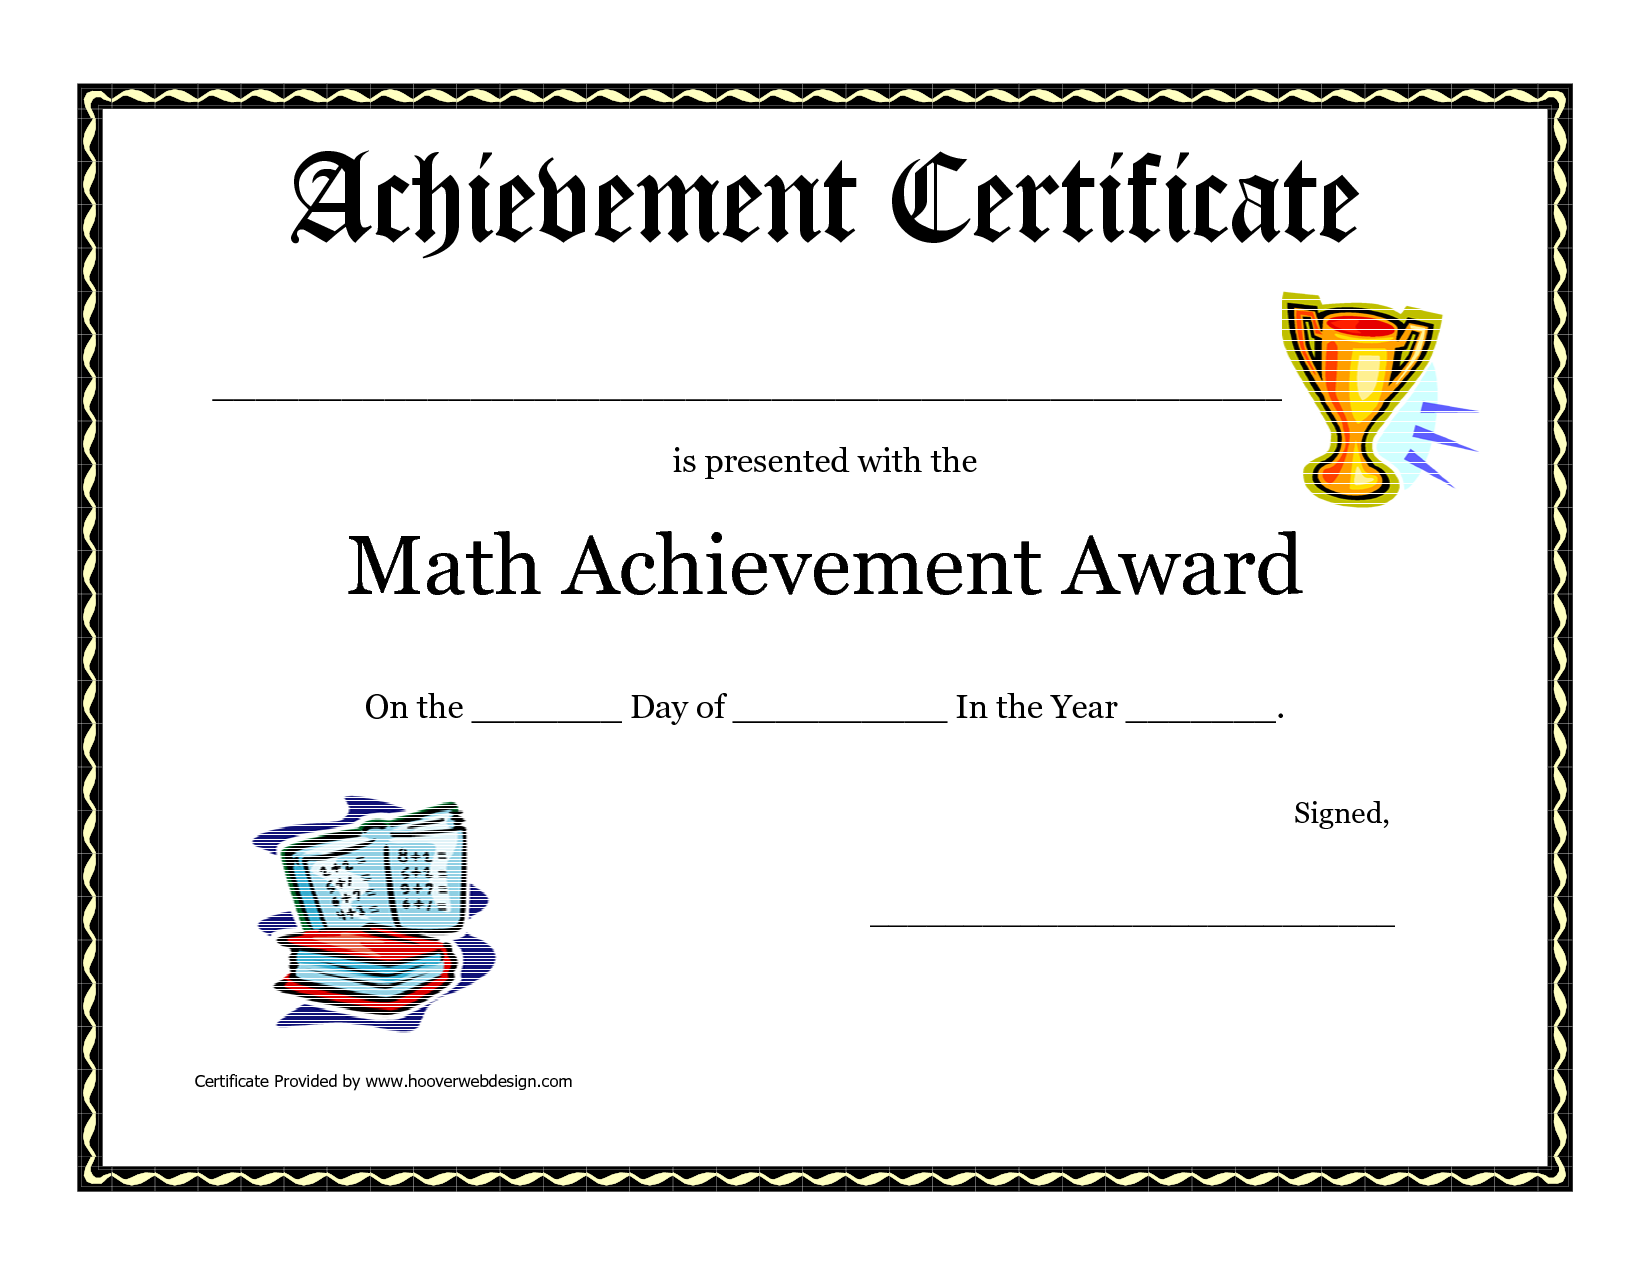 math achievement award printable certificate pdf math activites